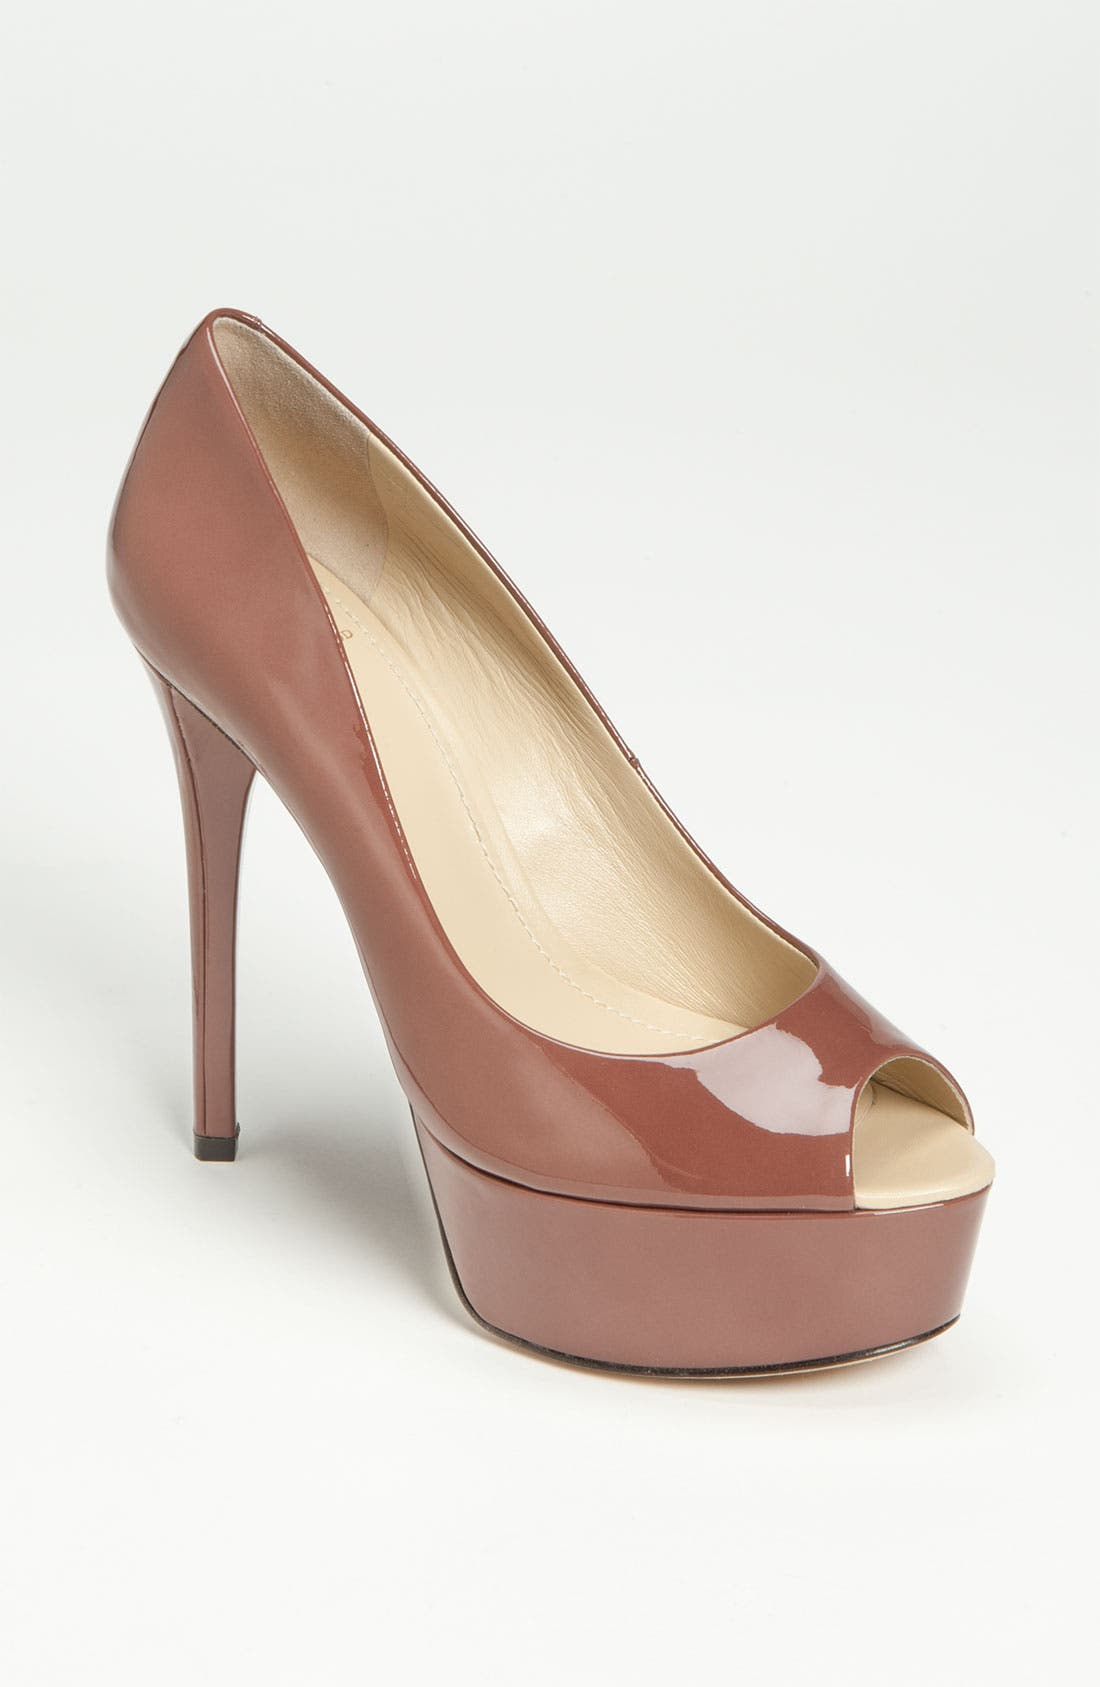 Alternate Image 1 Selected - B Brian Atwood 'Bambola' Pump